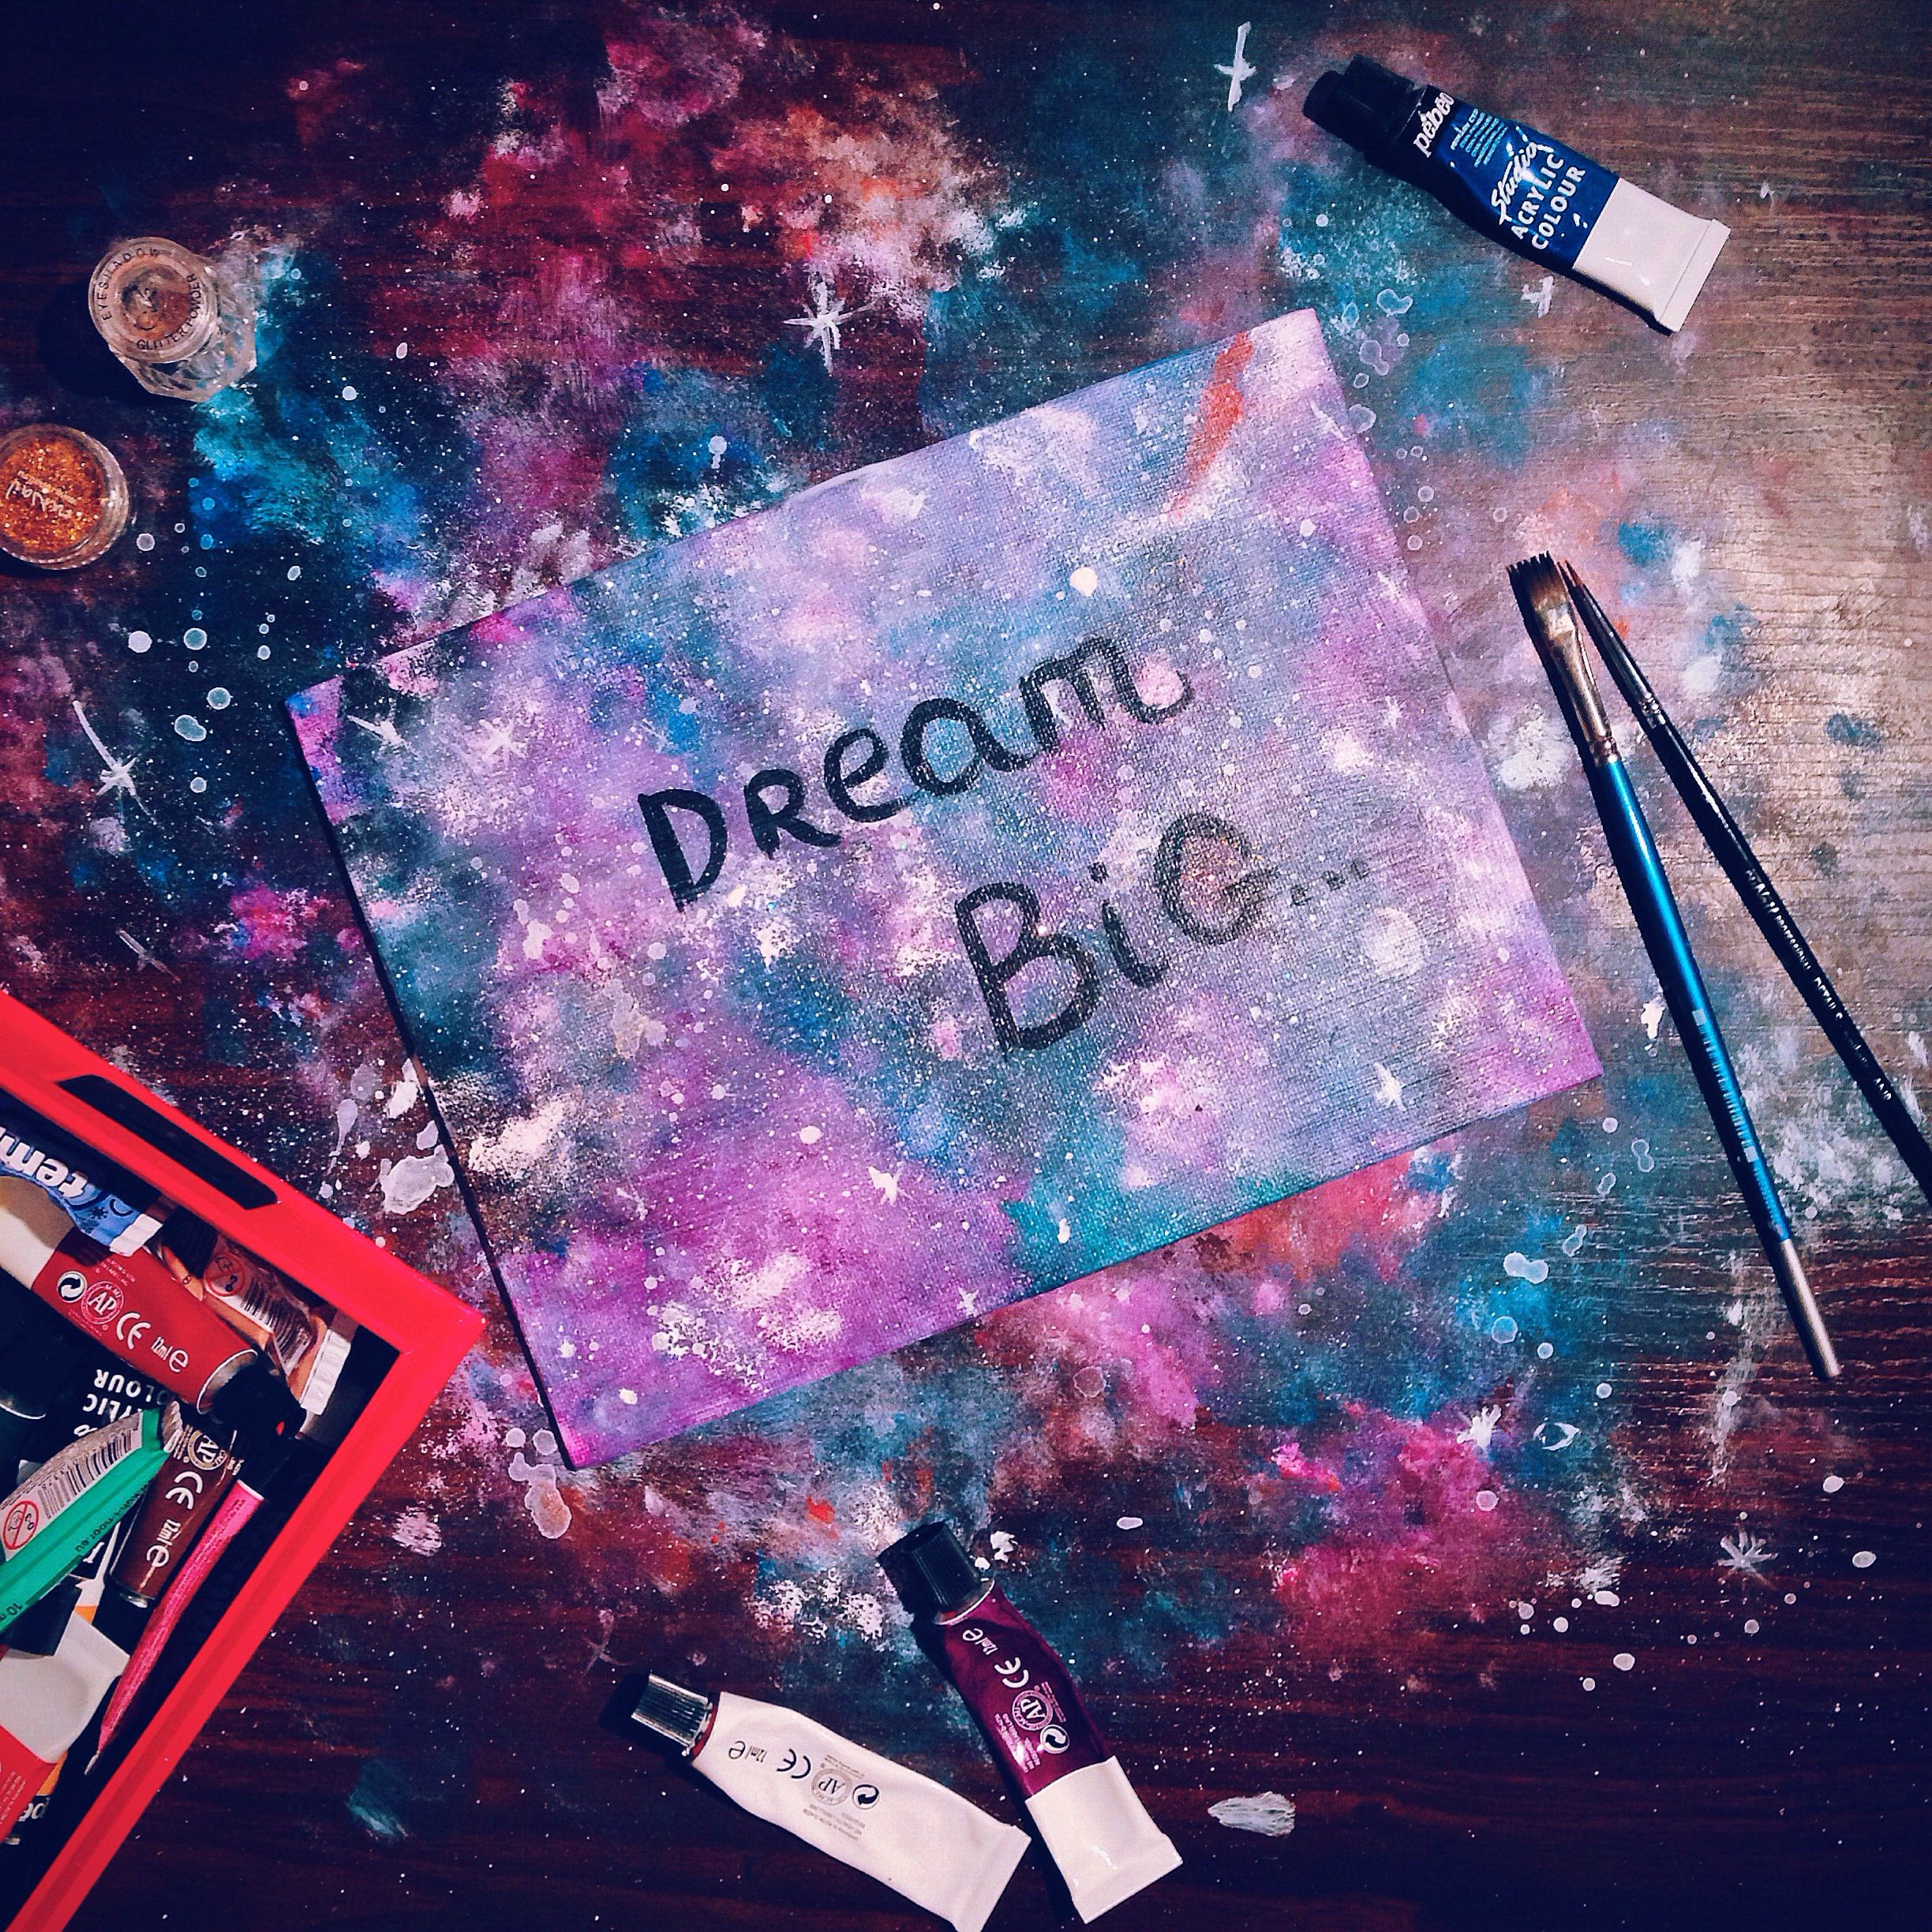 Dream big #motivation#board#dream#big#universe#galaxy#art#decor#room#decoration